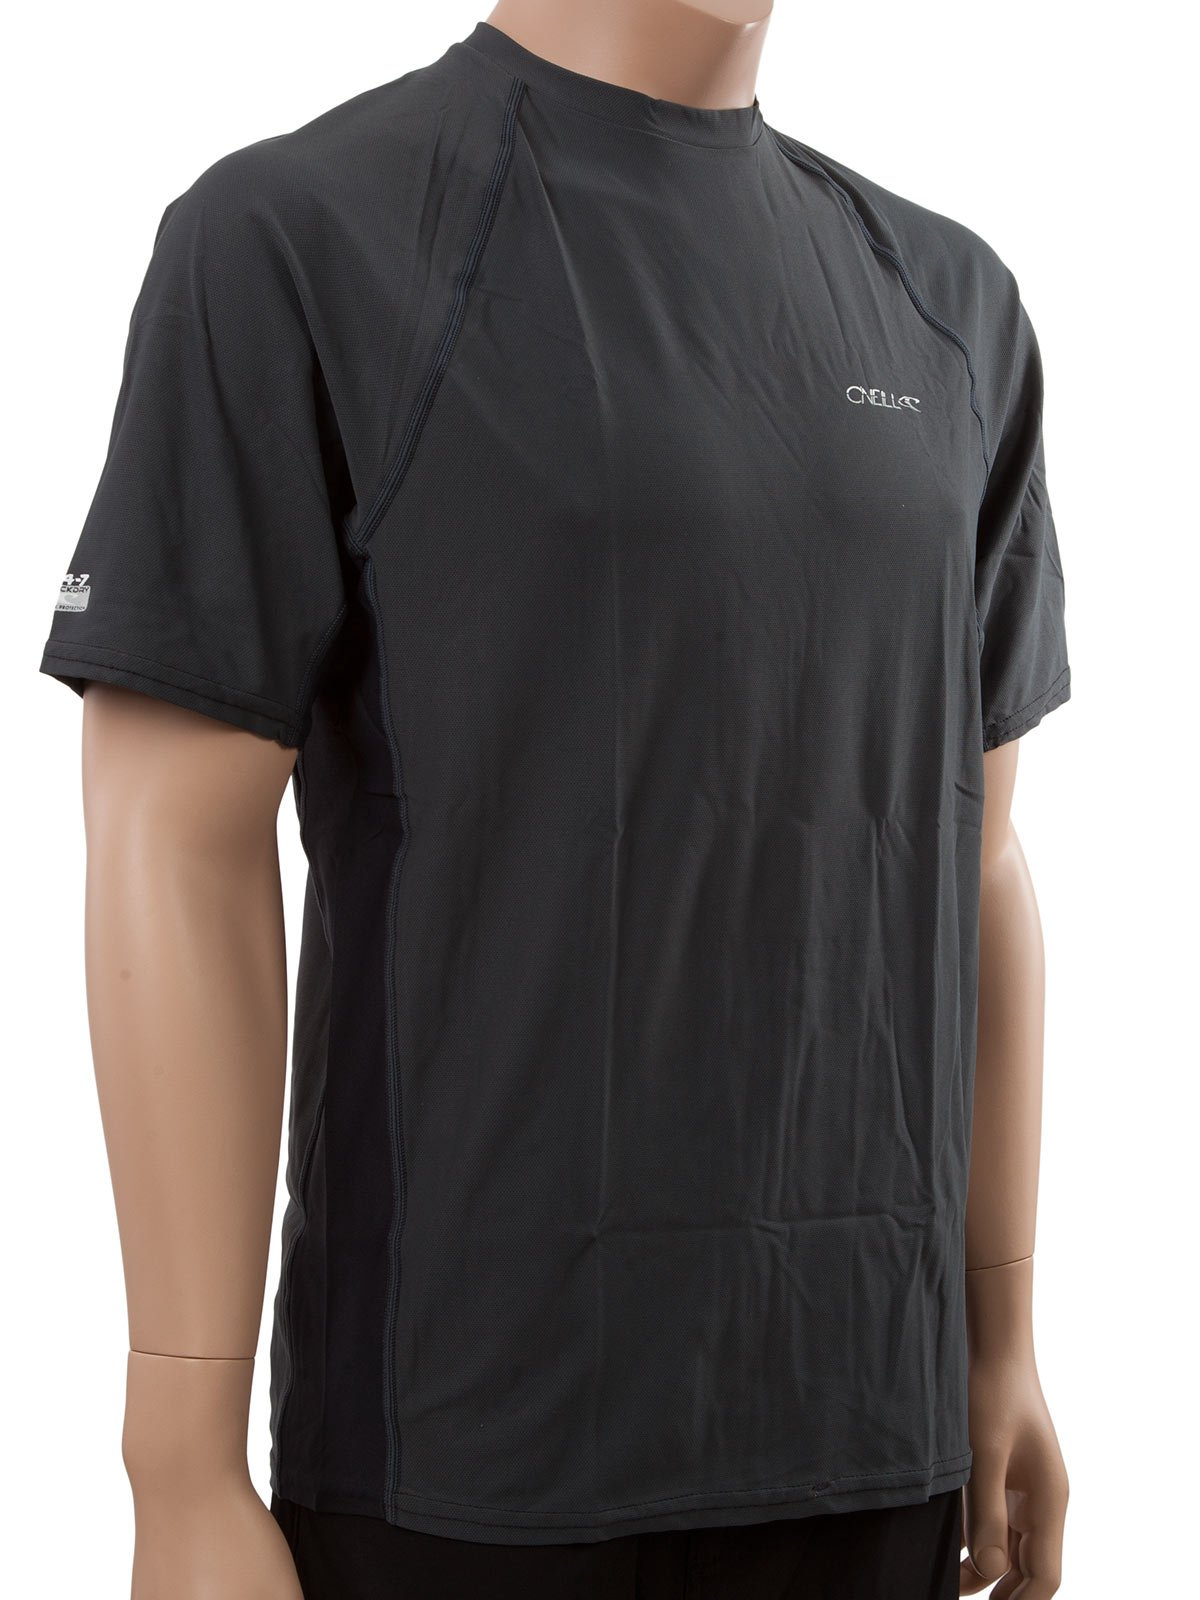 O'NEILL Men's 24/7 Sun tee King 5X Graphite/Black (4452) by O'NEILL